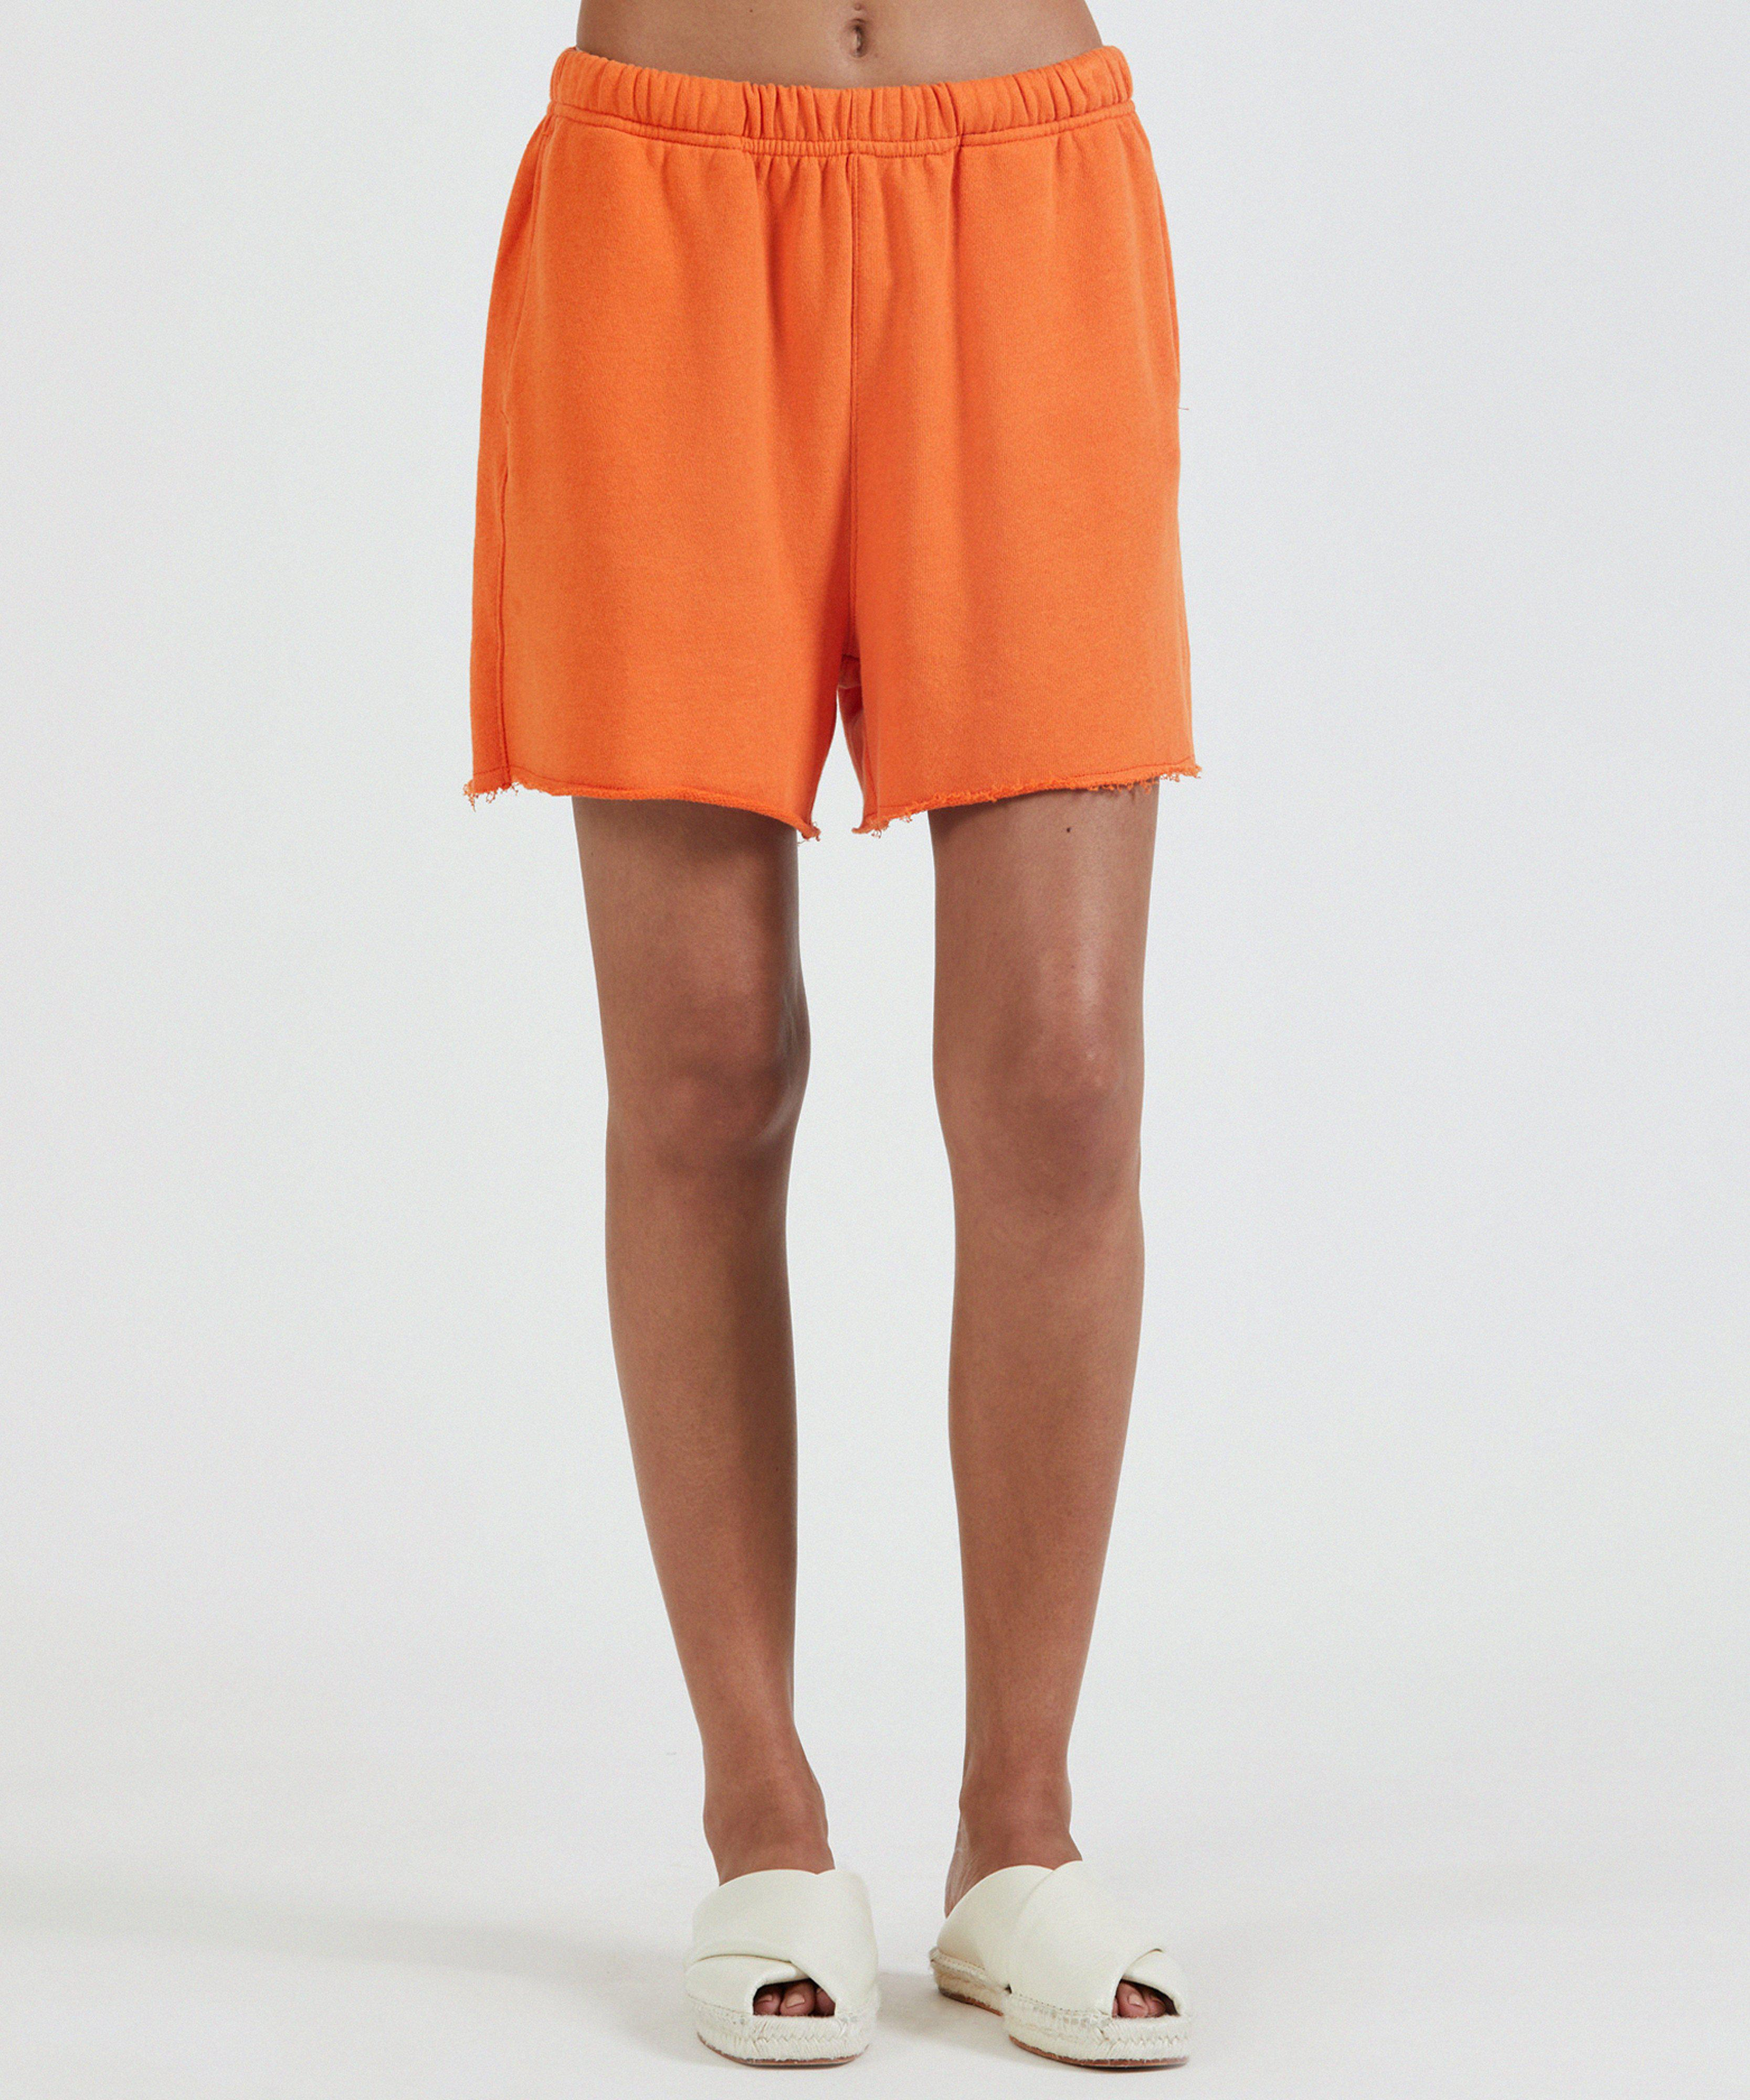 French Terry Pull-On Short - Clementine